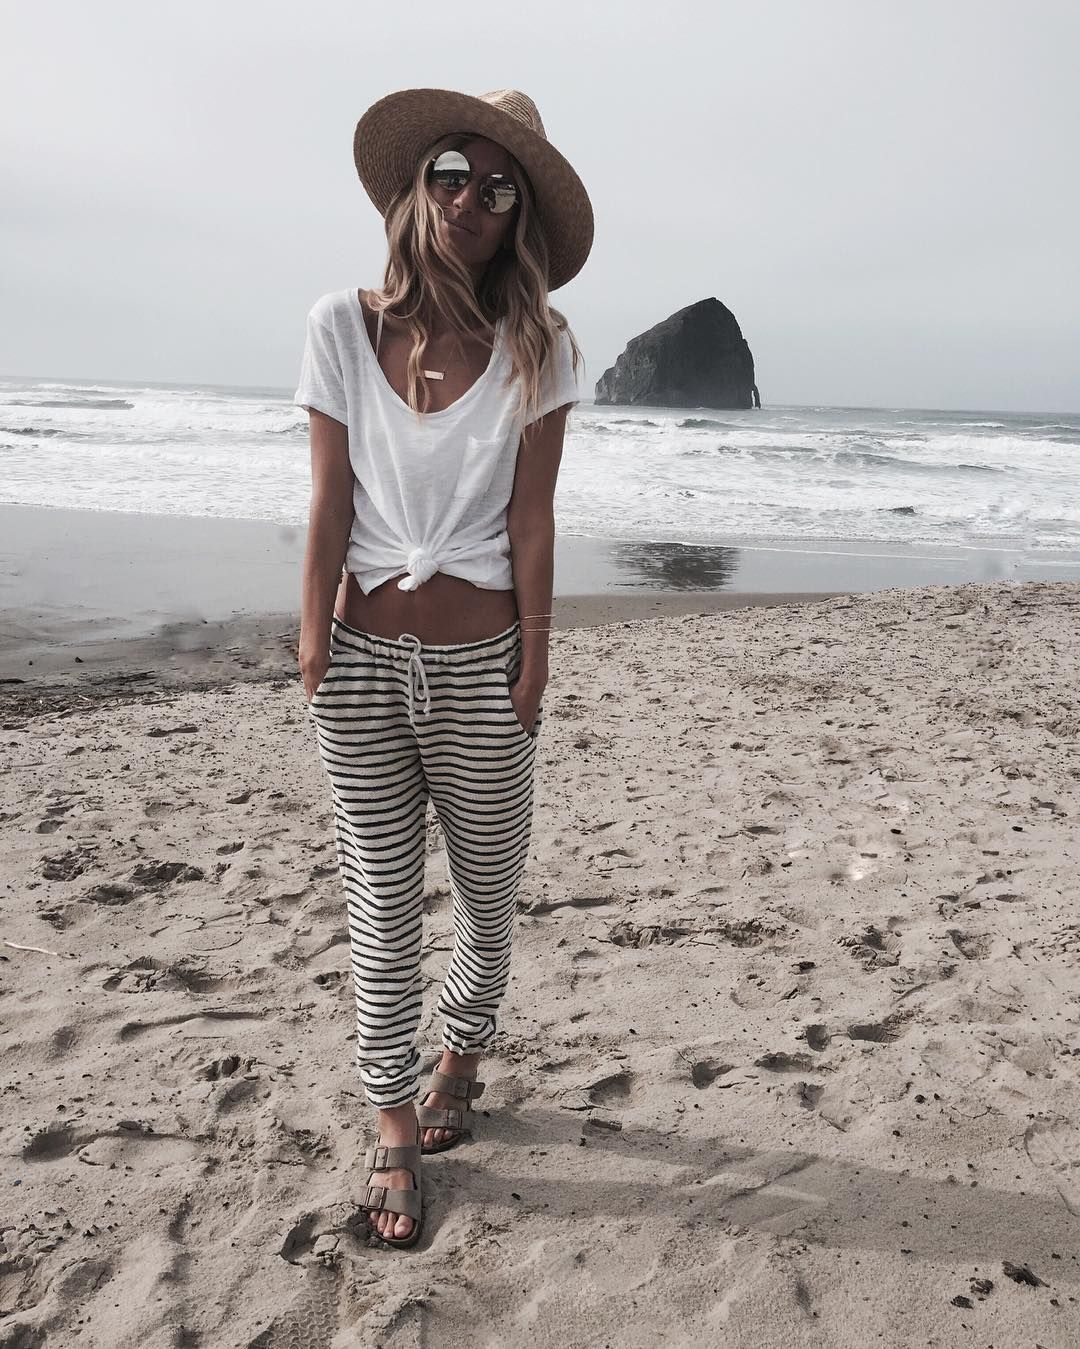 0a6d2998f77 summer fashion. striped pants. beach look. vacation. white t-shirt. hat.  sunglasses. casual. 2016. Boho Summer Beach Fashion